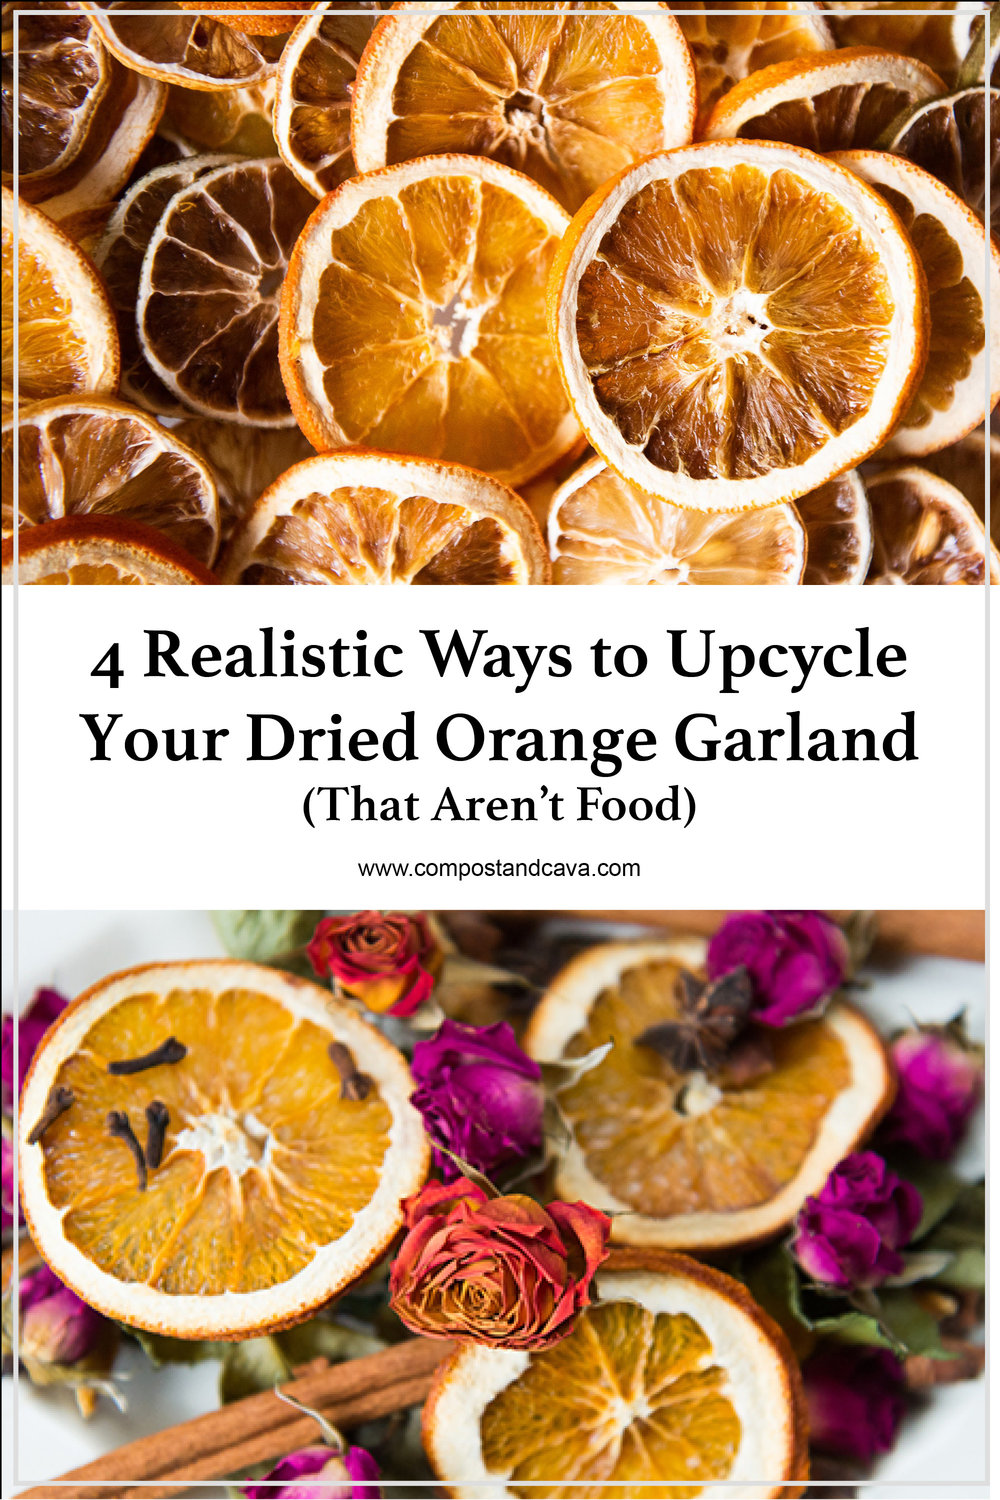 4 Realistic Ways to Upcycle Your Zero Waste Dried Orange Garland (That Aren't Food)